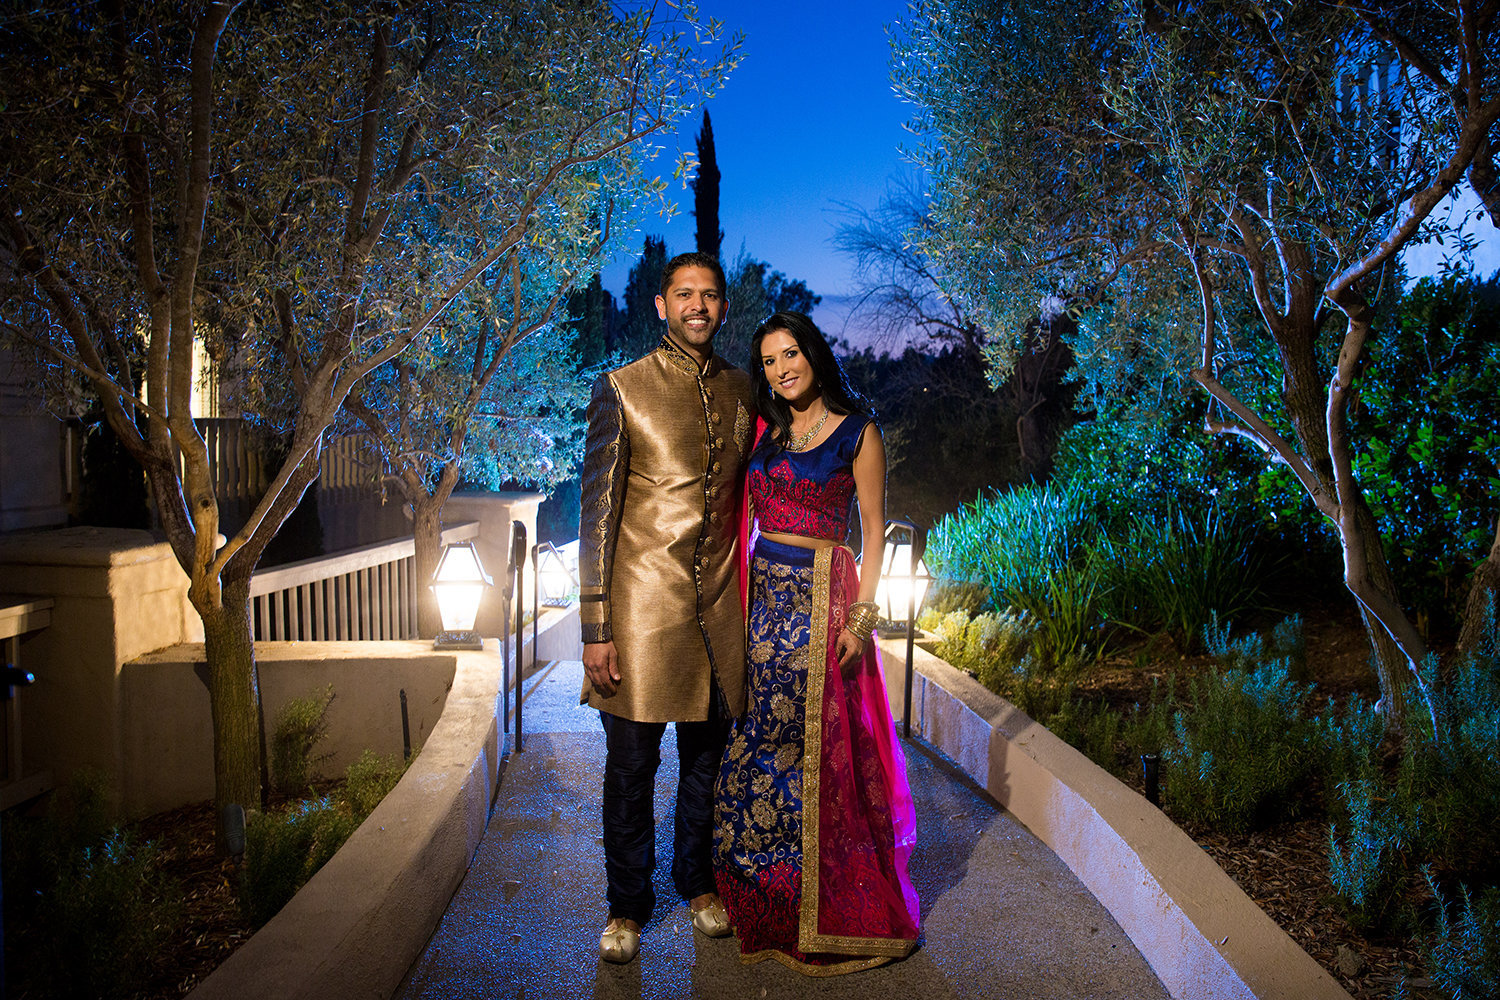 Incredible portrait of Indian bride and groom during sunset at Rancho Bernardo Inn in San Diego